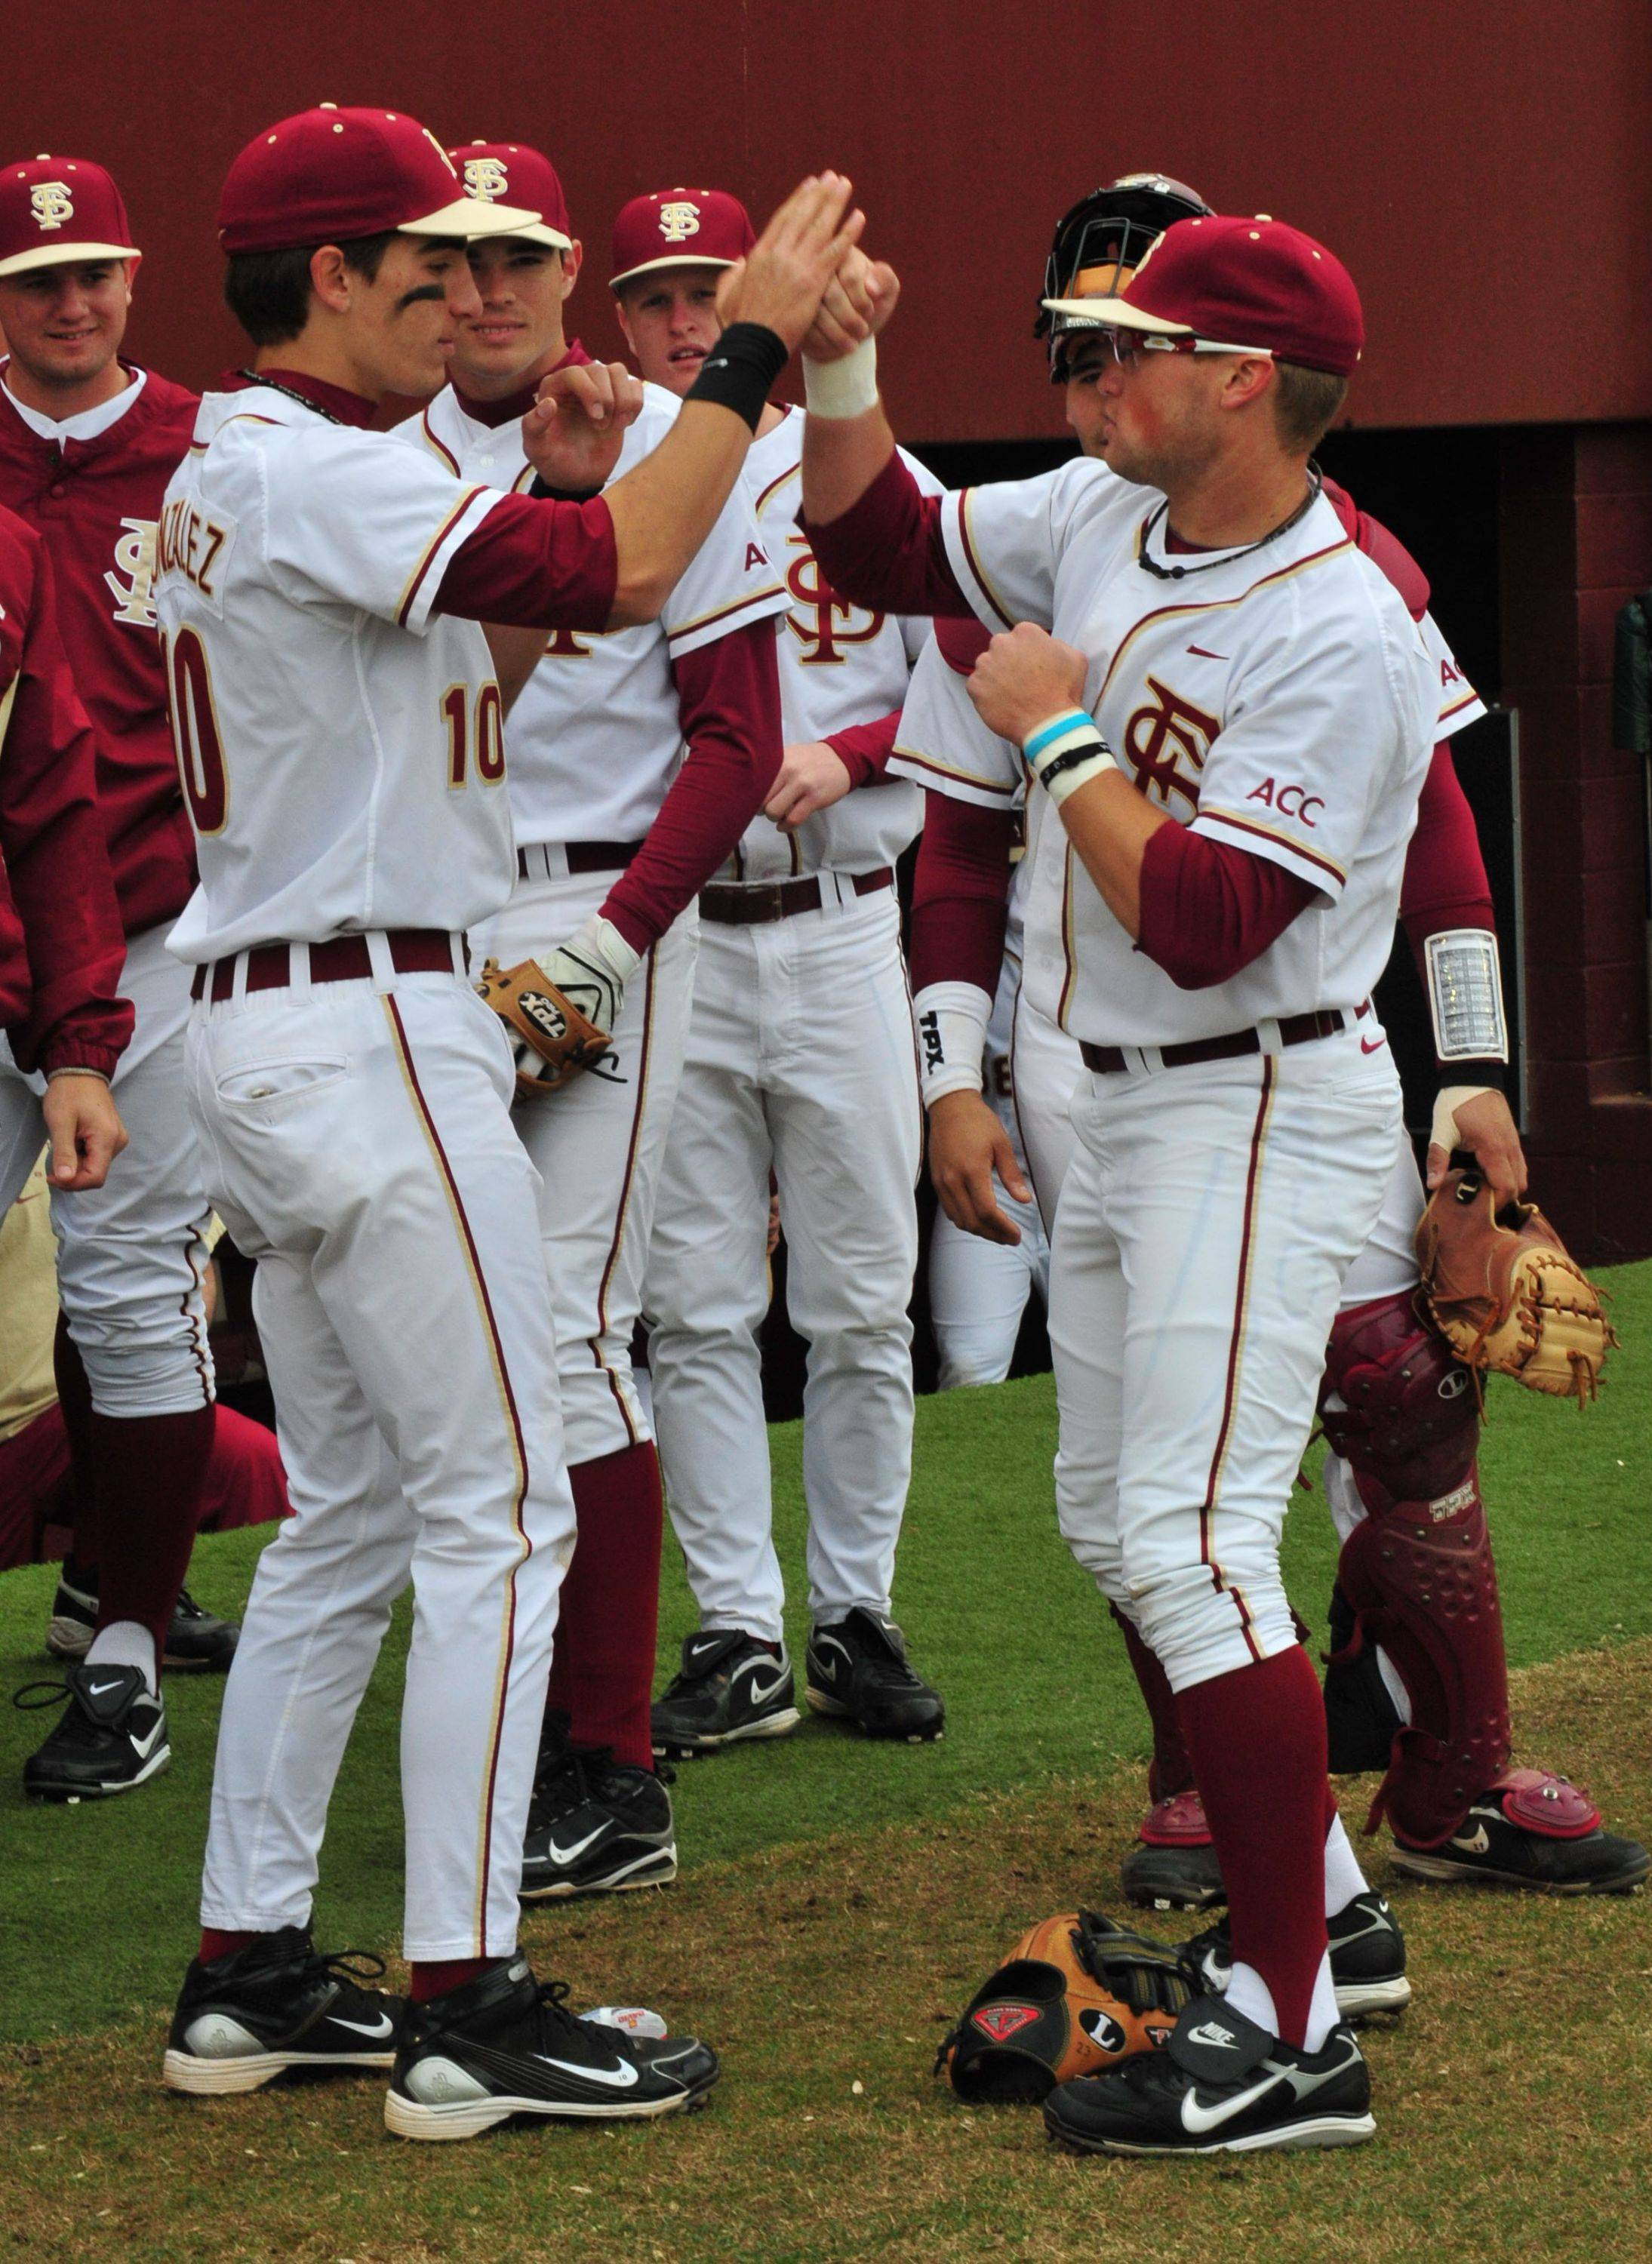 Justin Gonzalez and James Ramsey display their pre-game handshake.